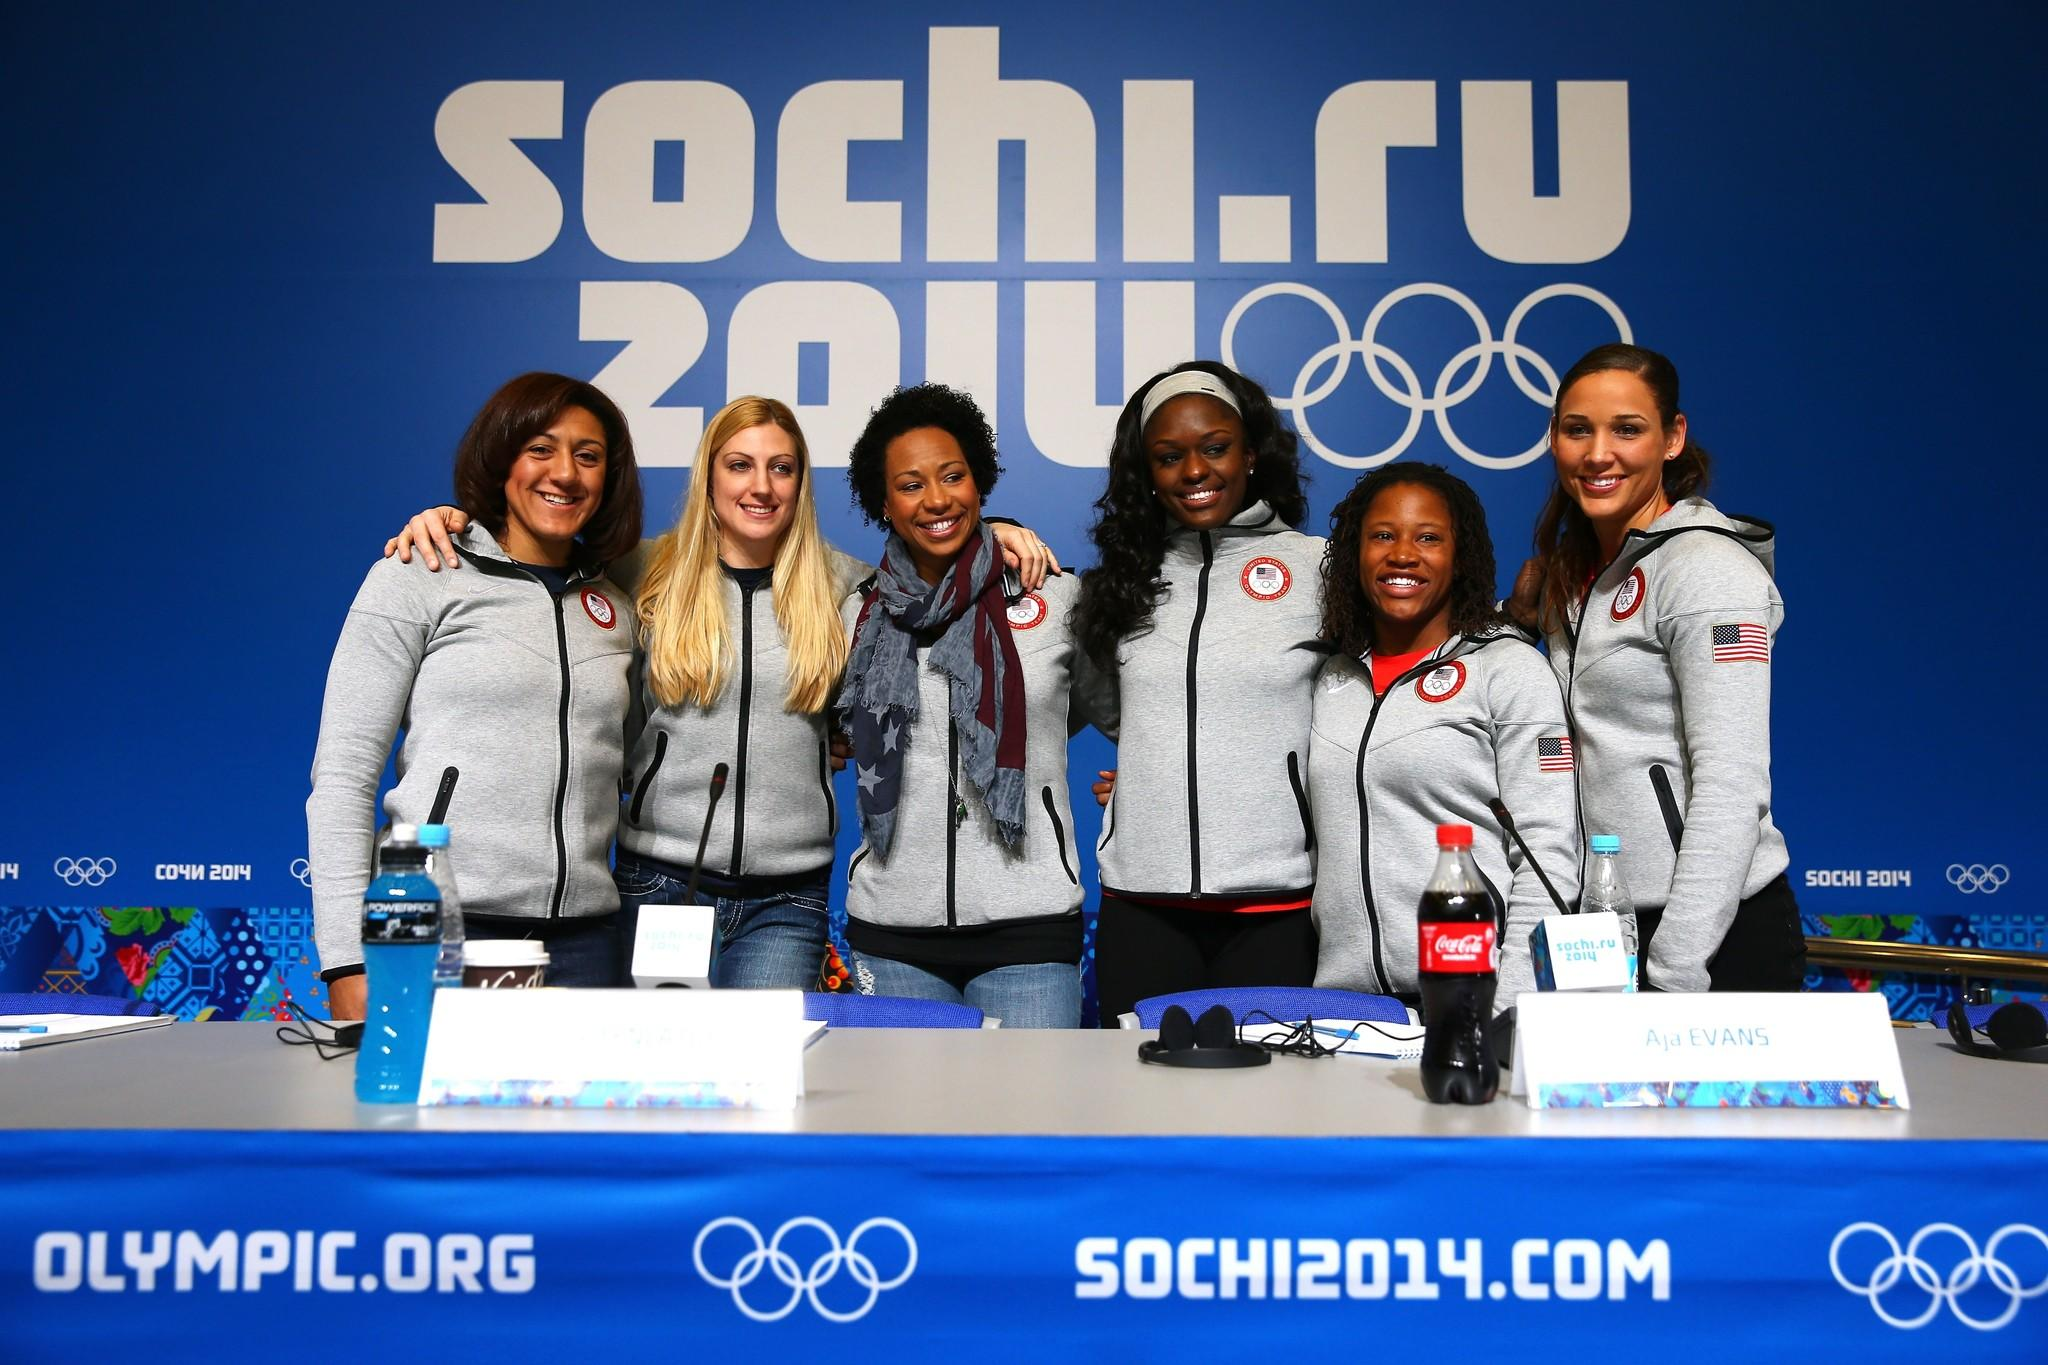 Elana Meyers (from left), Jamie Greubel, Jazmine Fenlator, Aja Evans, Lauryn Williams and Lolo Jones of the United States attend a Women's Bobsleigh team news conference.